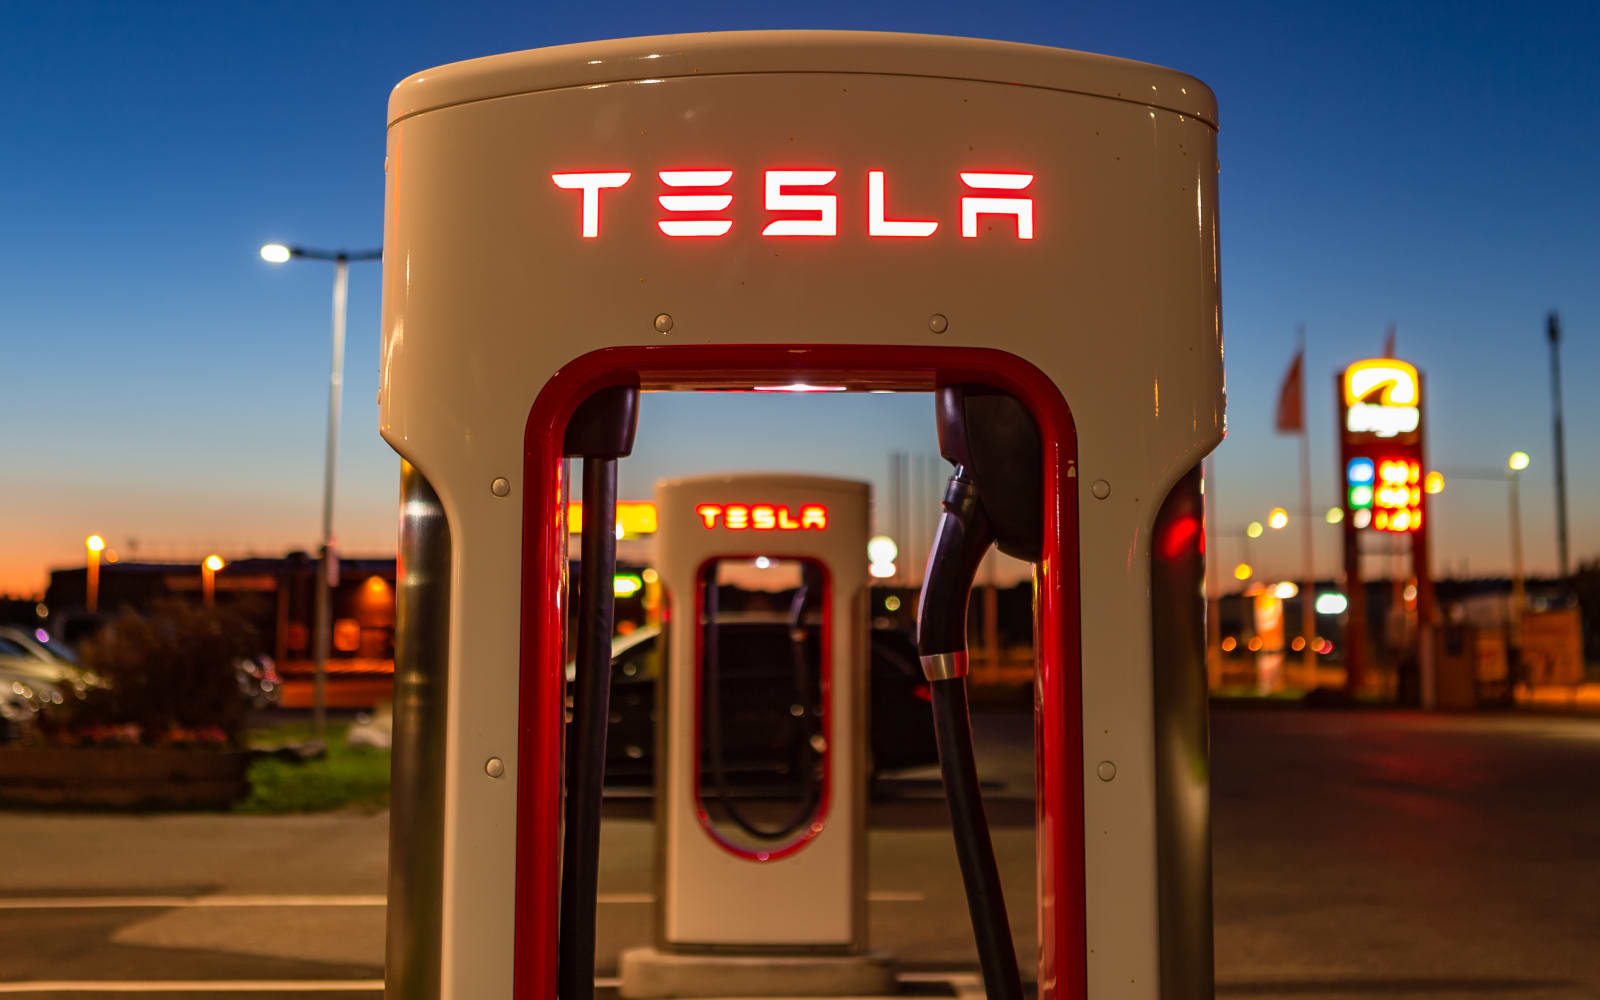 Tesla warns California customers to charge their EVs ahead of outages